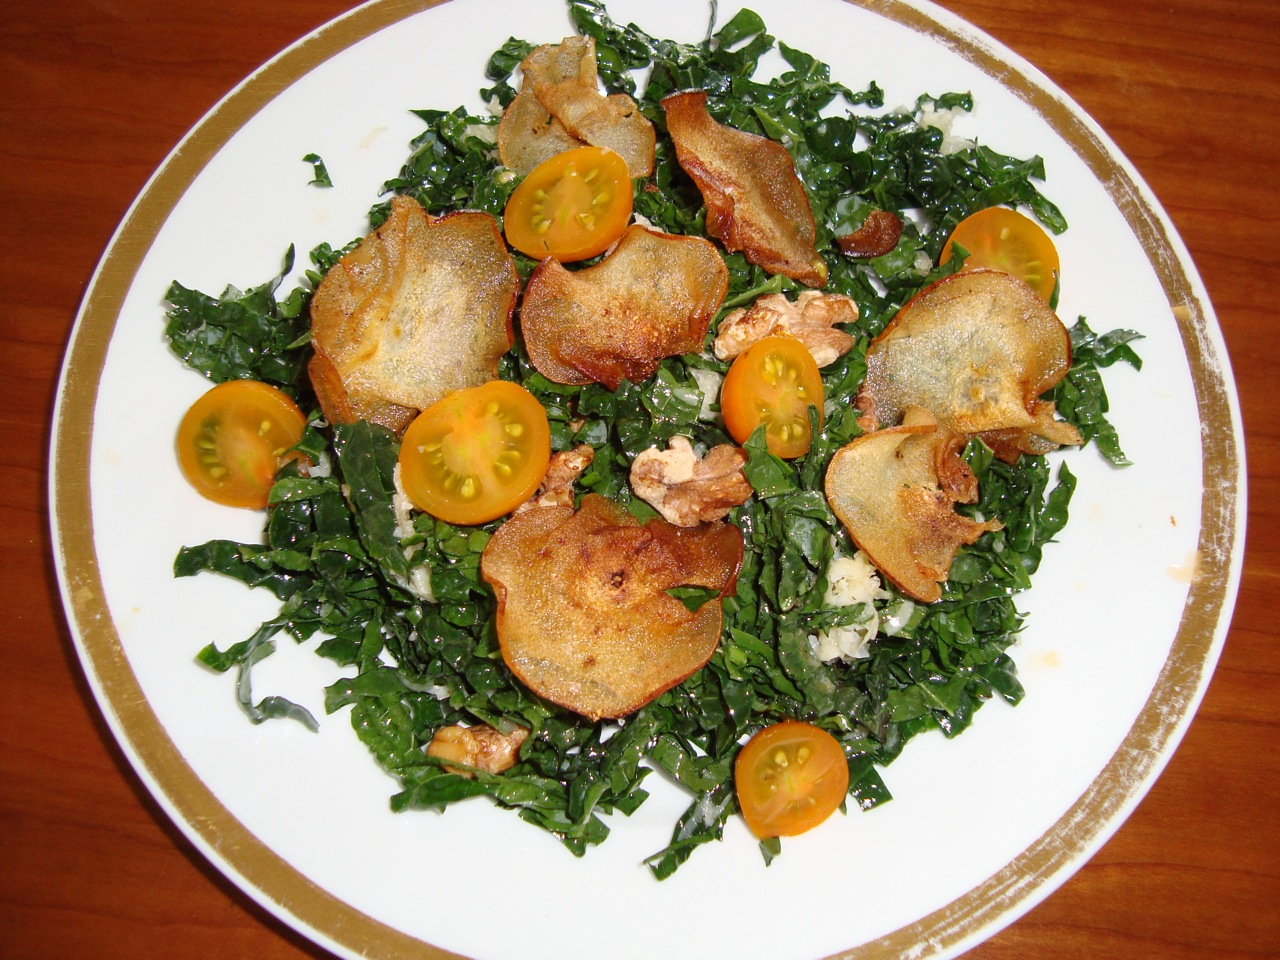 Kale Salad with Fried Pear Chips and Toasted Walnuts